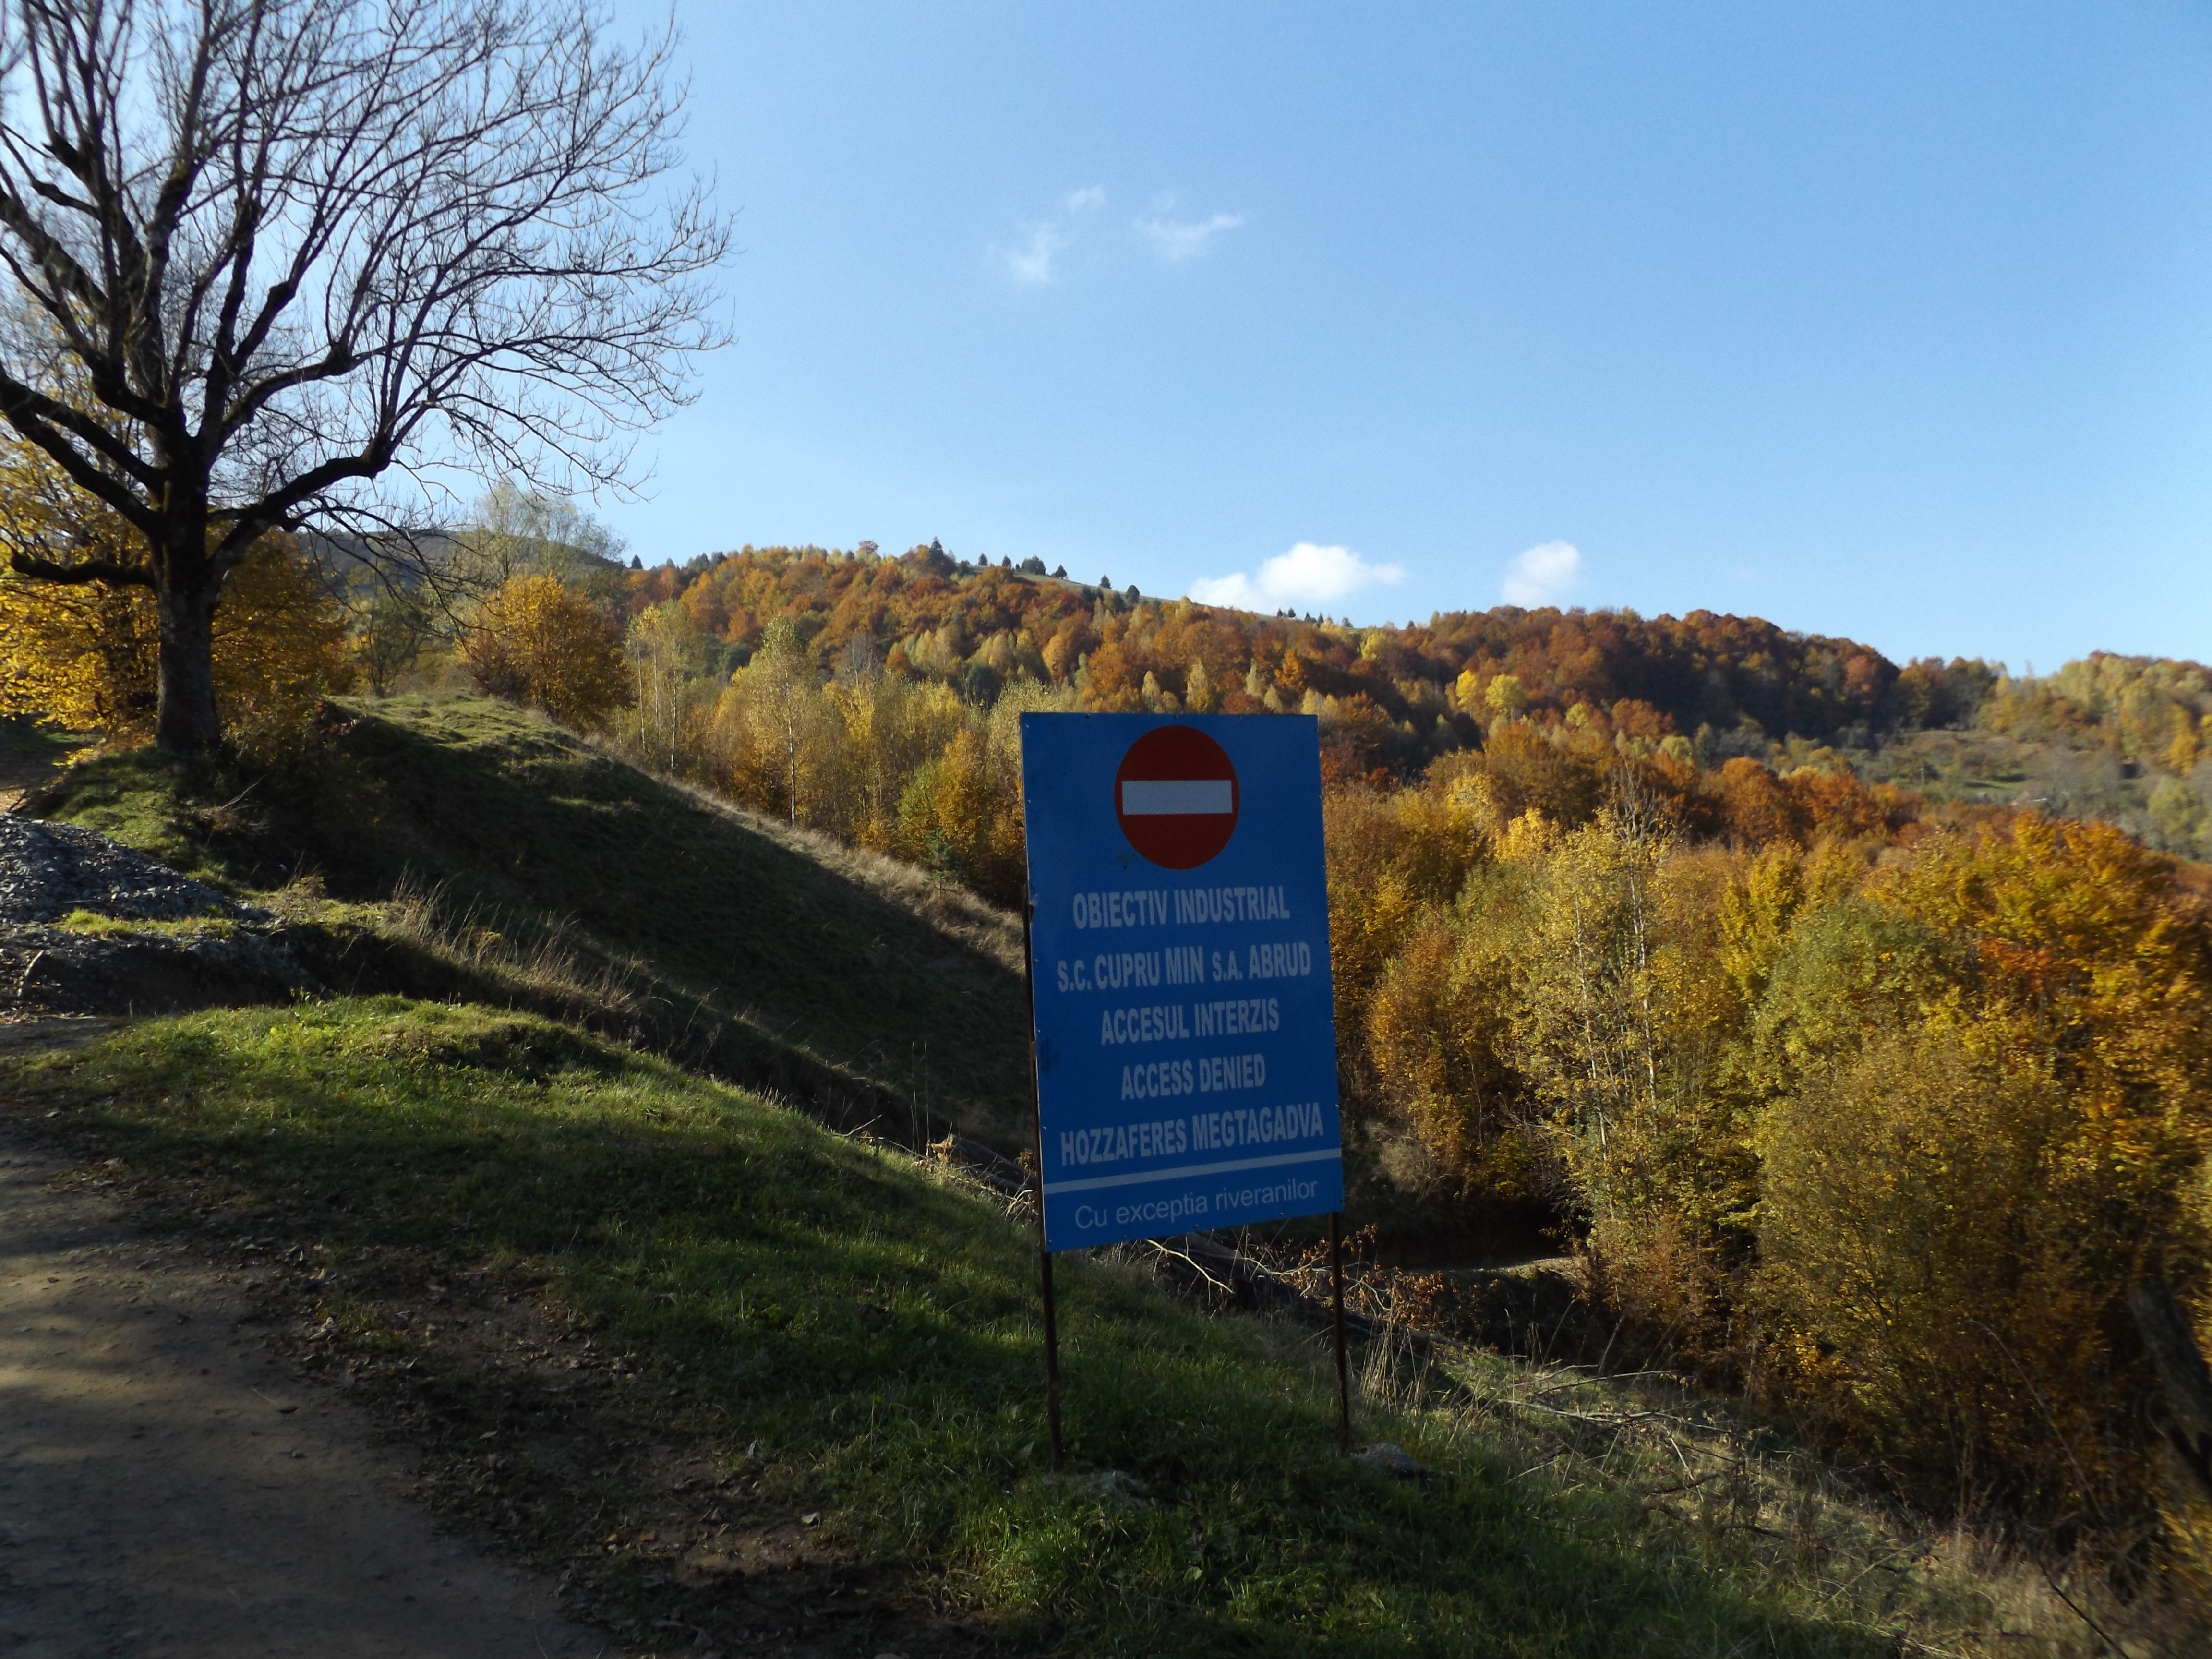 Access to the village is technically unauthorized. Image courtesy of the author.